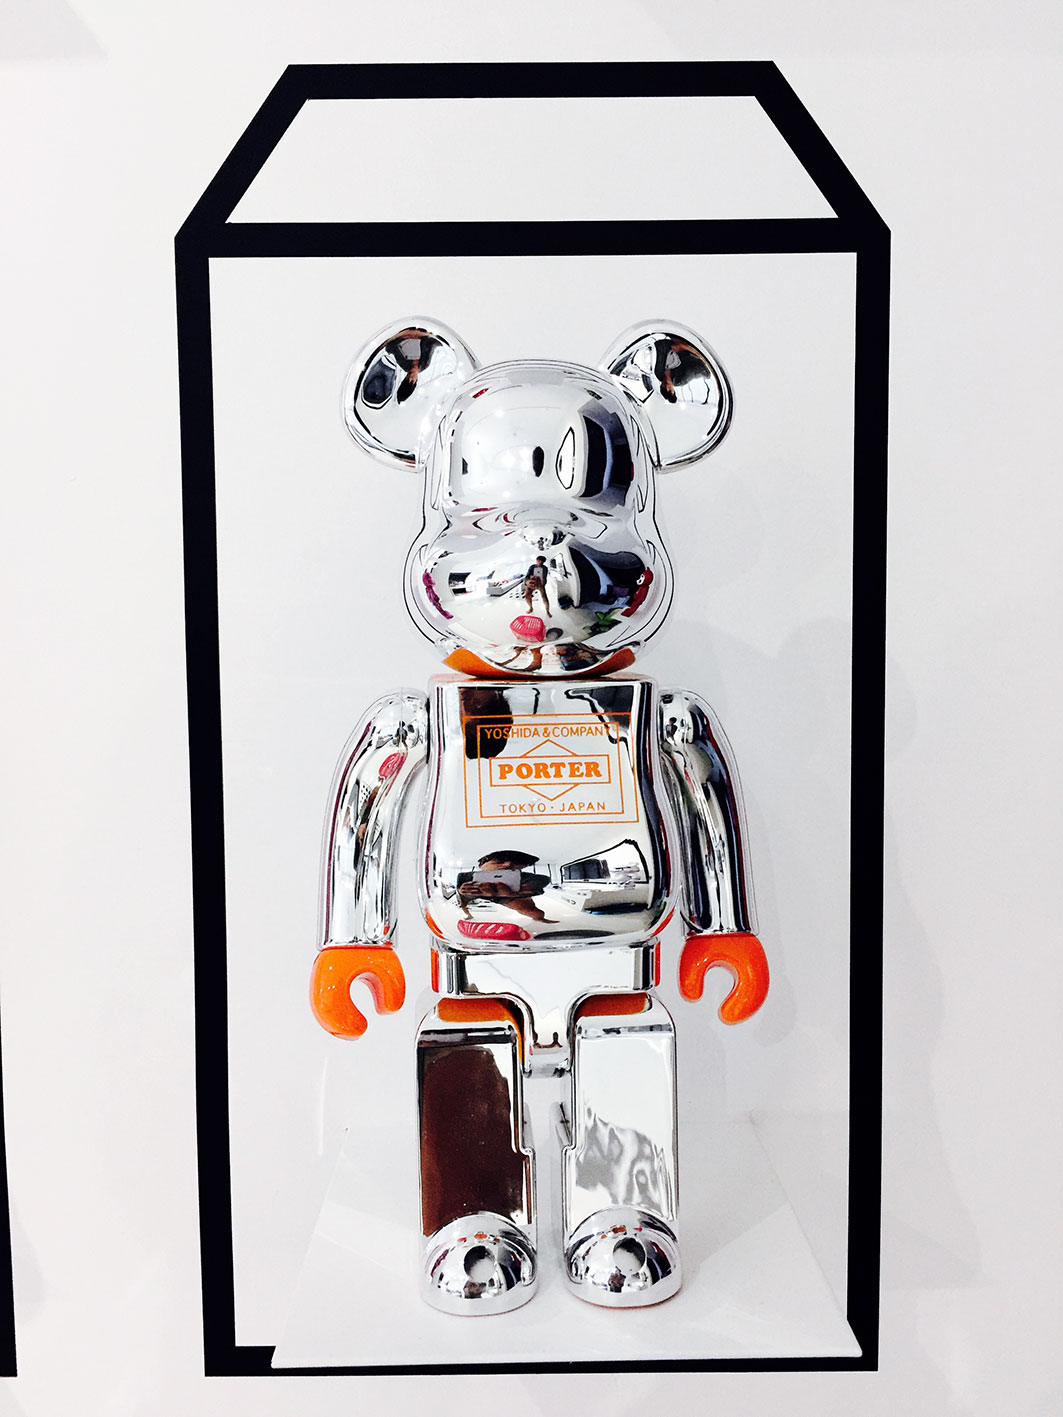 Up close look of the Bearbrick display.